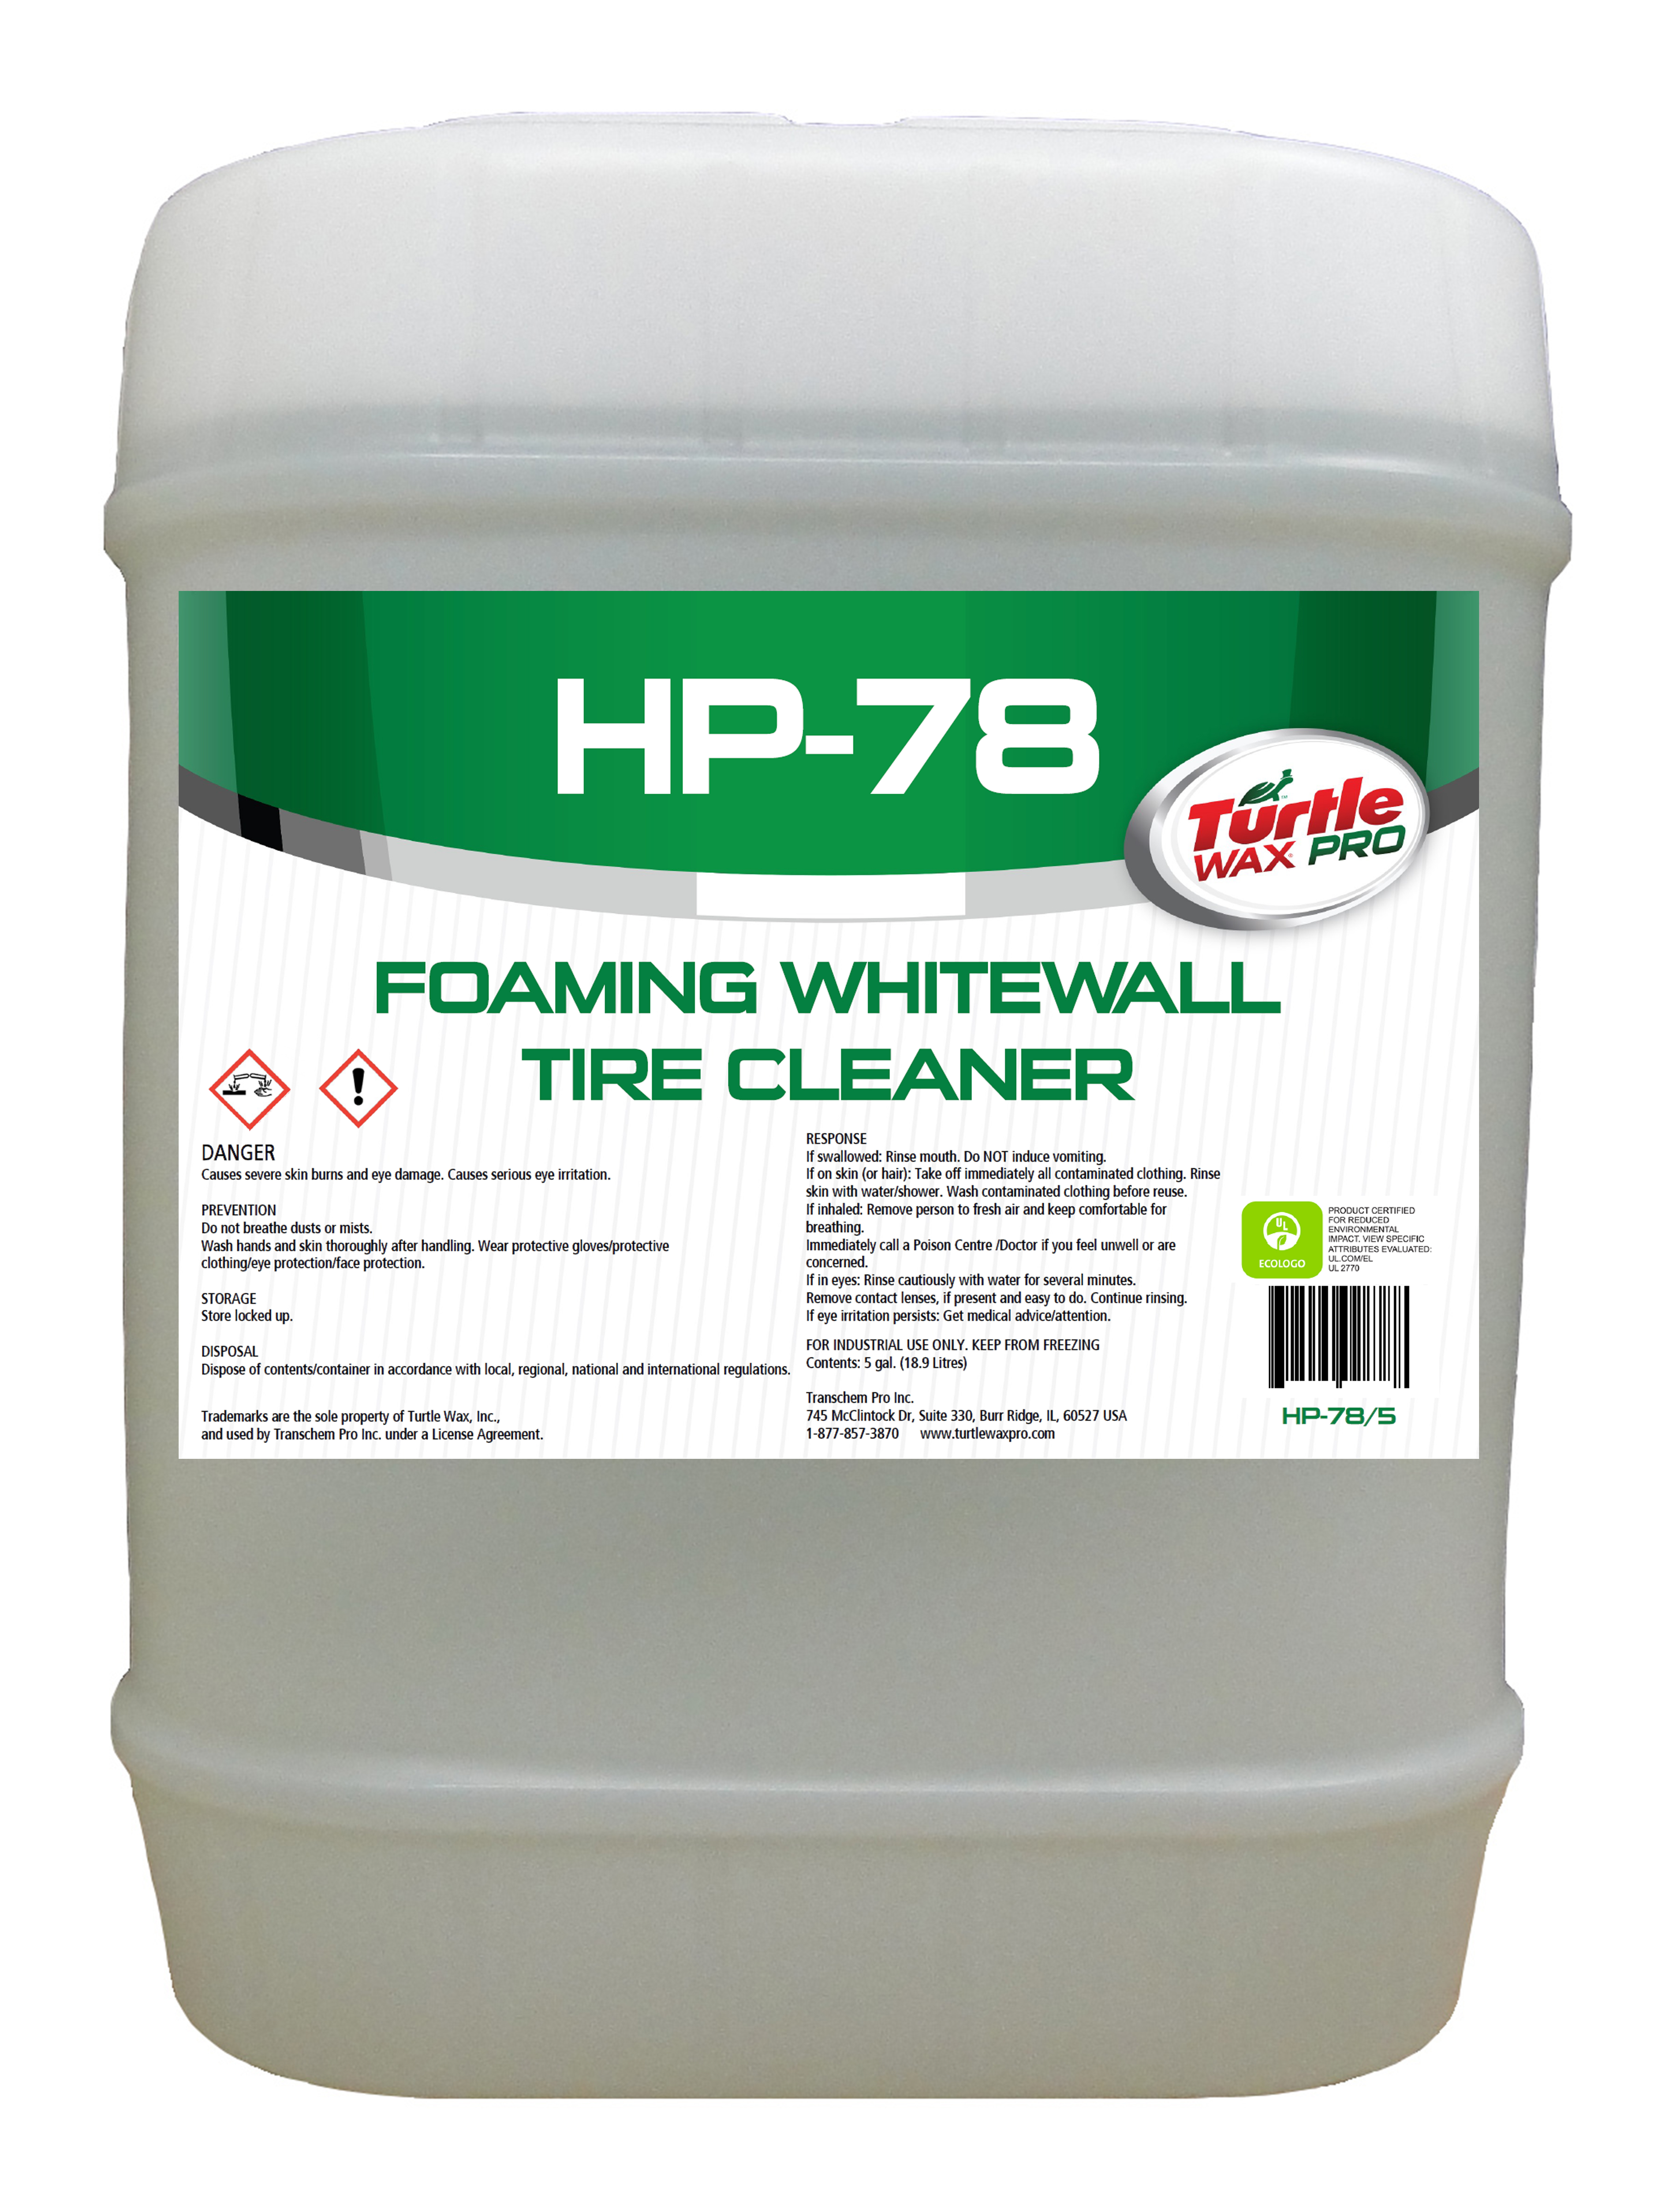 hp78 foaming whitewall tire cleaner